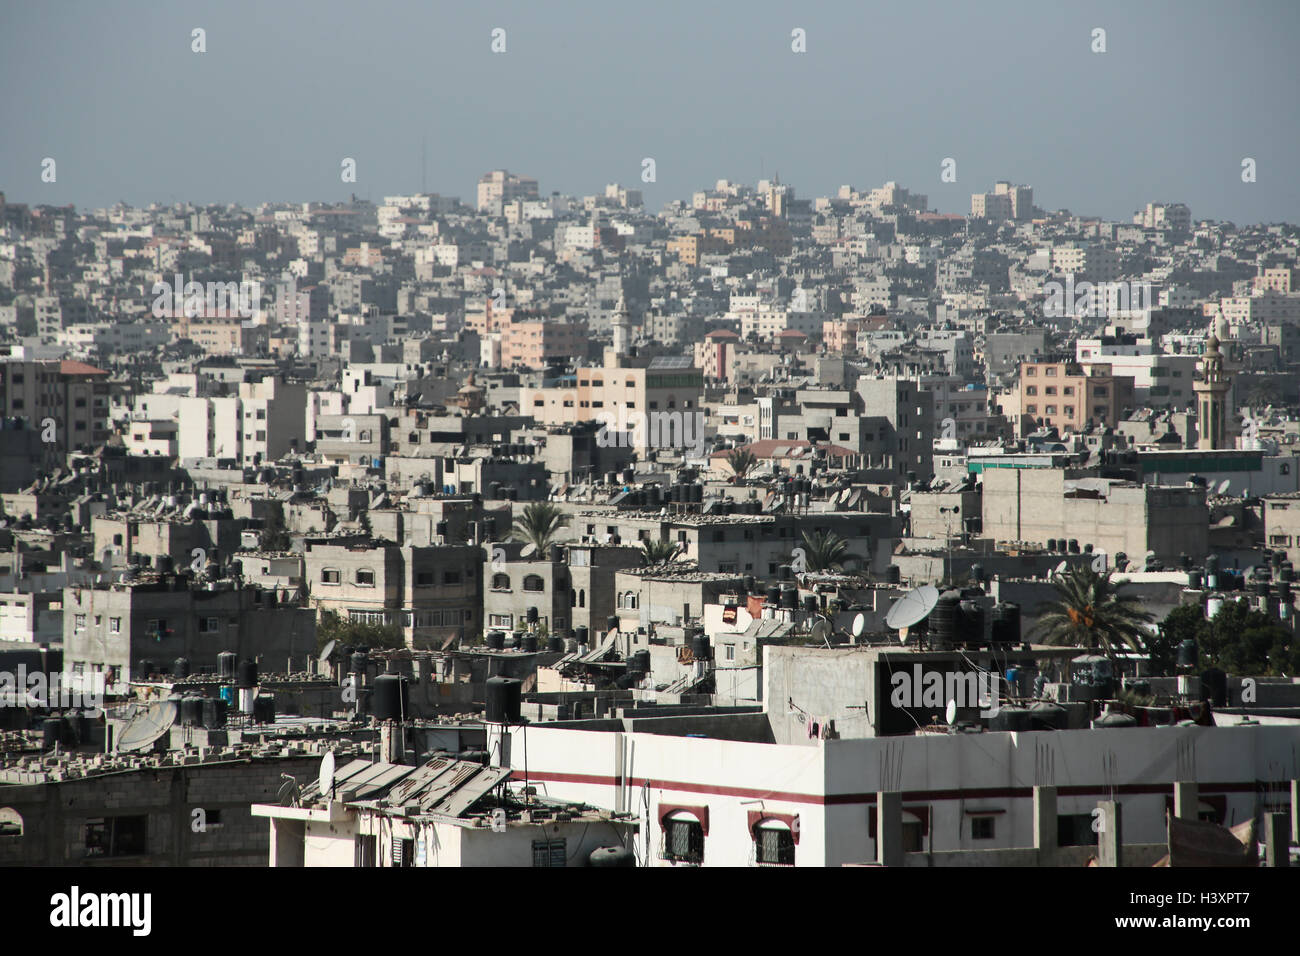 General views of Gaza. From a series of photos commissioned by  British NGO, Medical Aid for Palestinians (MAP). - Stock Image